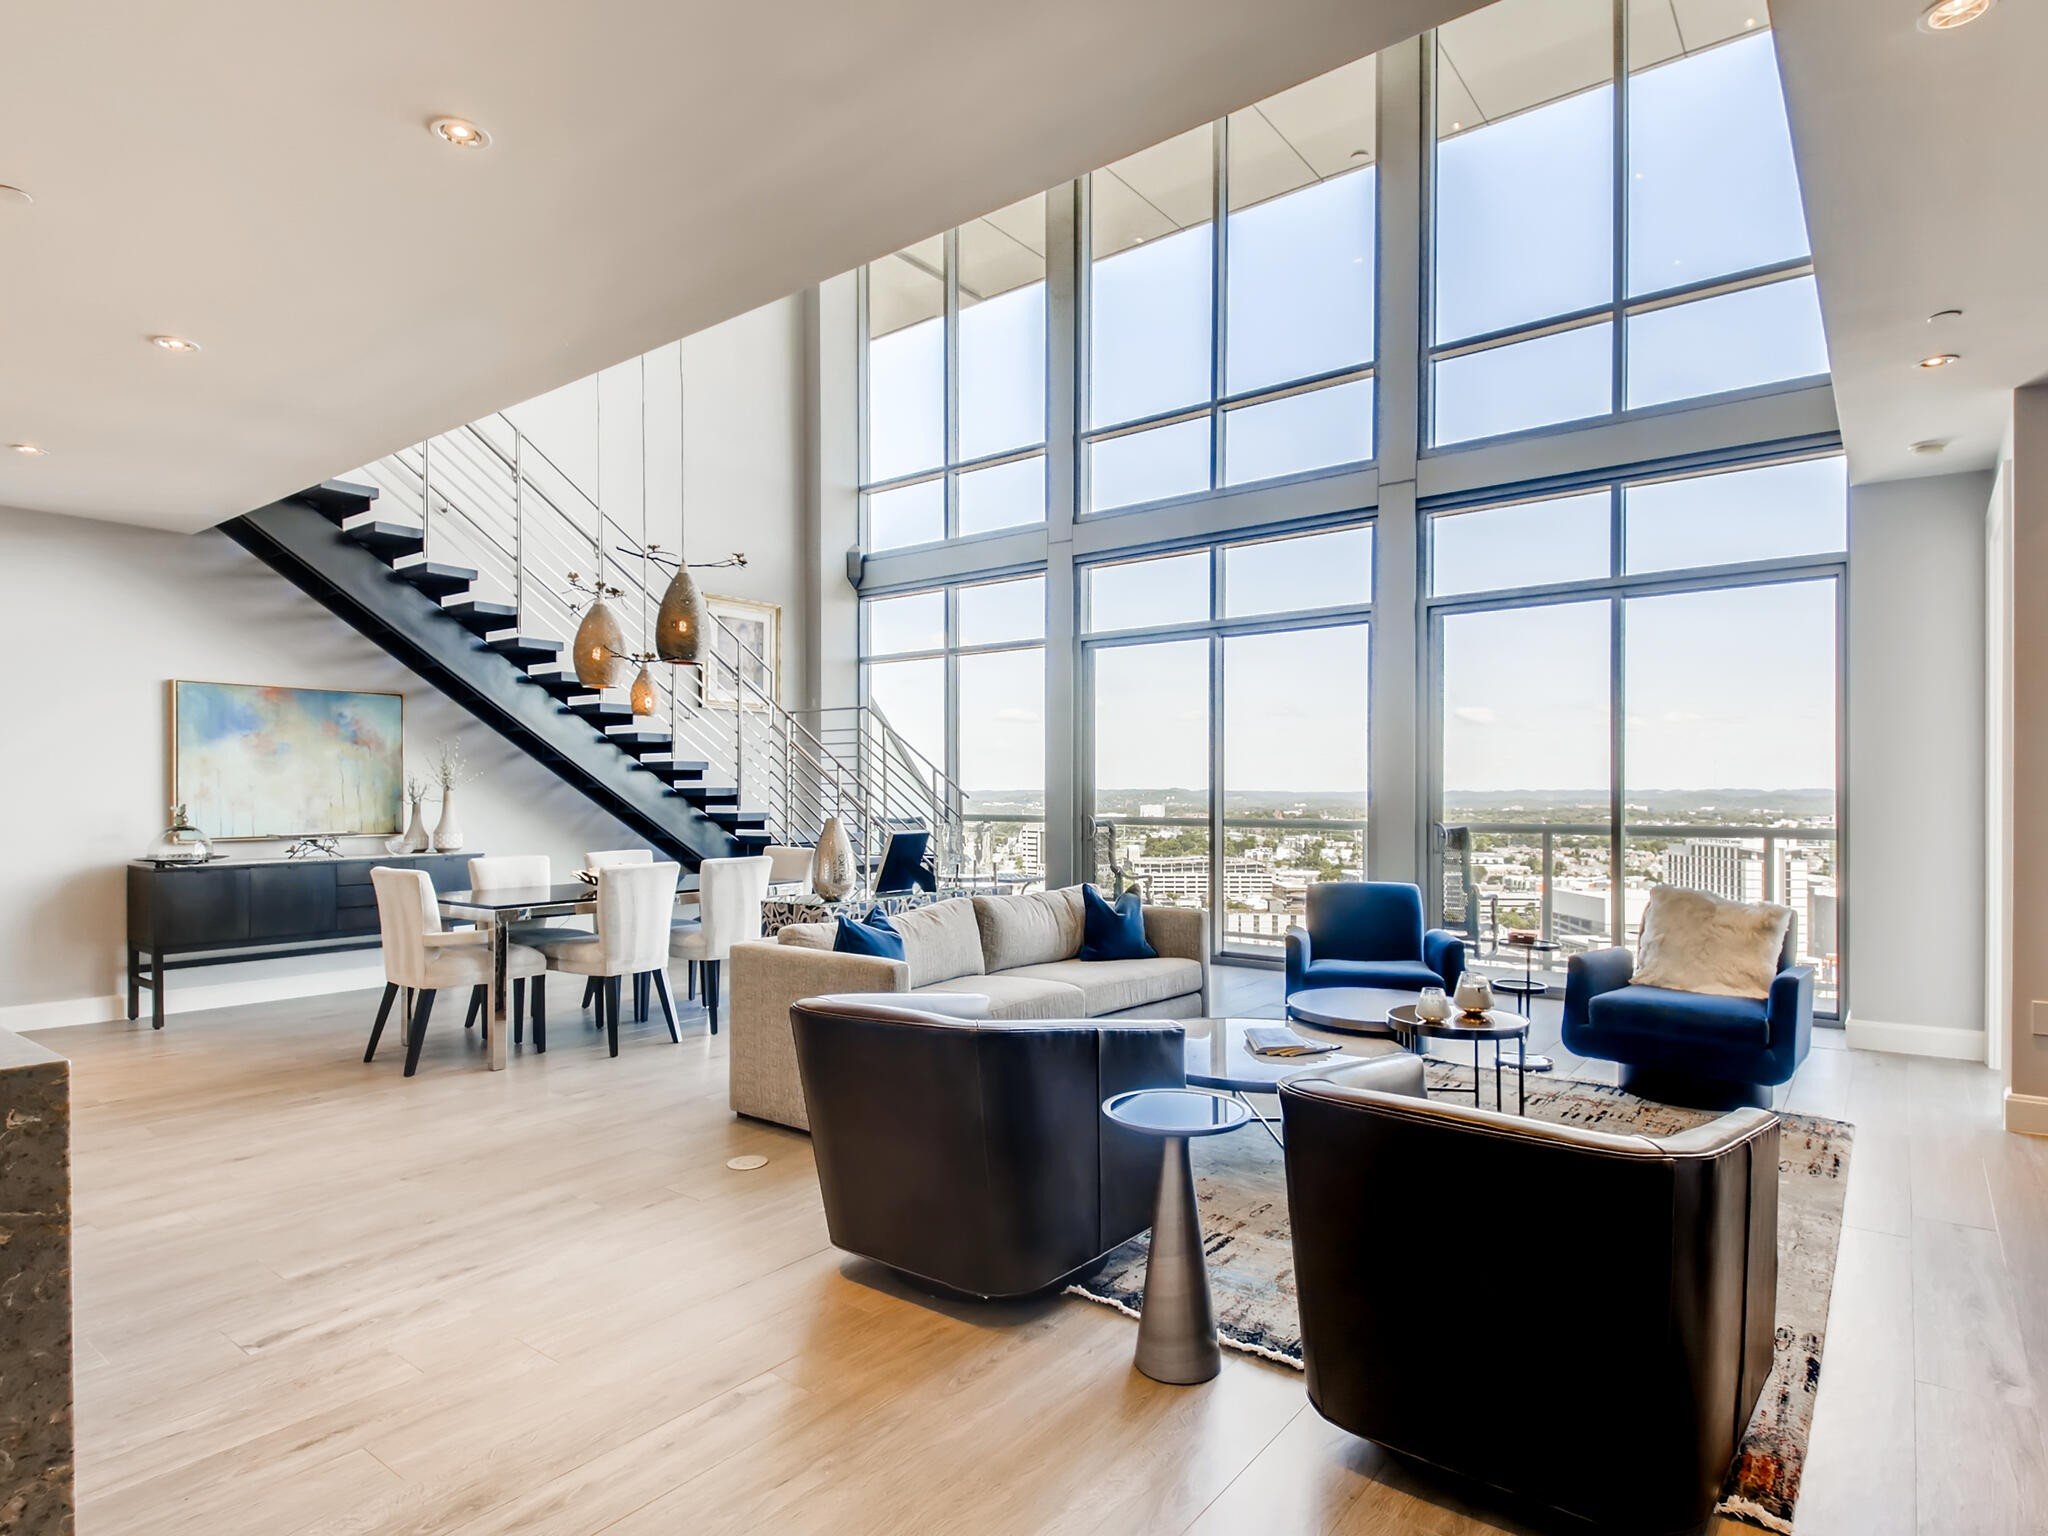 This Midtown Penthouse condo has all the space and amenities you are looking for.  Almost 3000 square feet of luxury, this unit was fully renovated in 2019.  It features 2 bedrooms and 3.5 bathrooms with an office/ den that can easily be converted to a 3rd bedroom.  The location and view can not be beat.  With 24/7 security, private ground level parking for the penthouse level, and all the other amenities the Adelicia has to offer, you won't be disappointed!